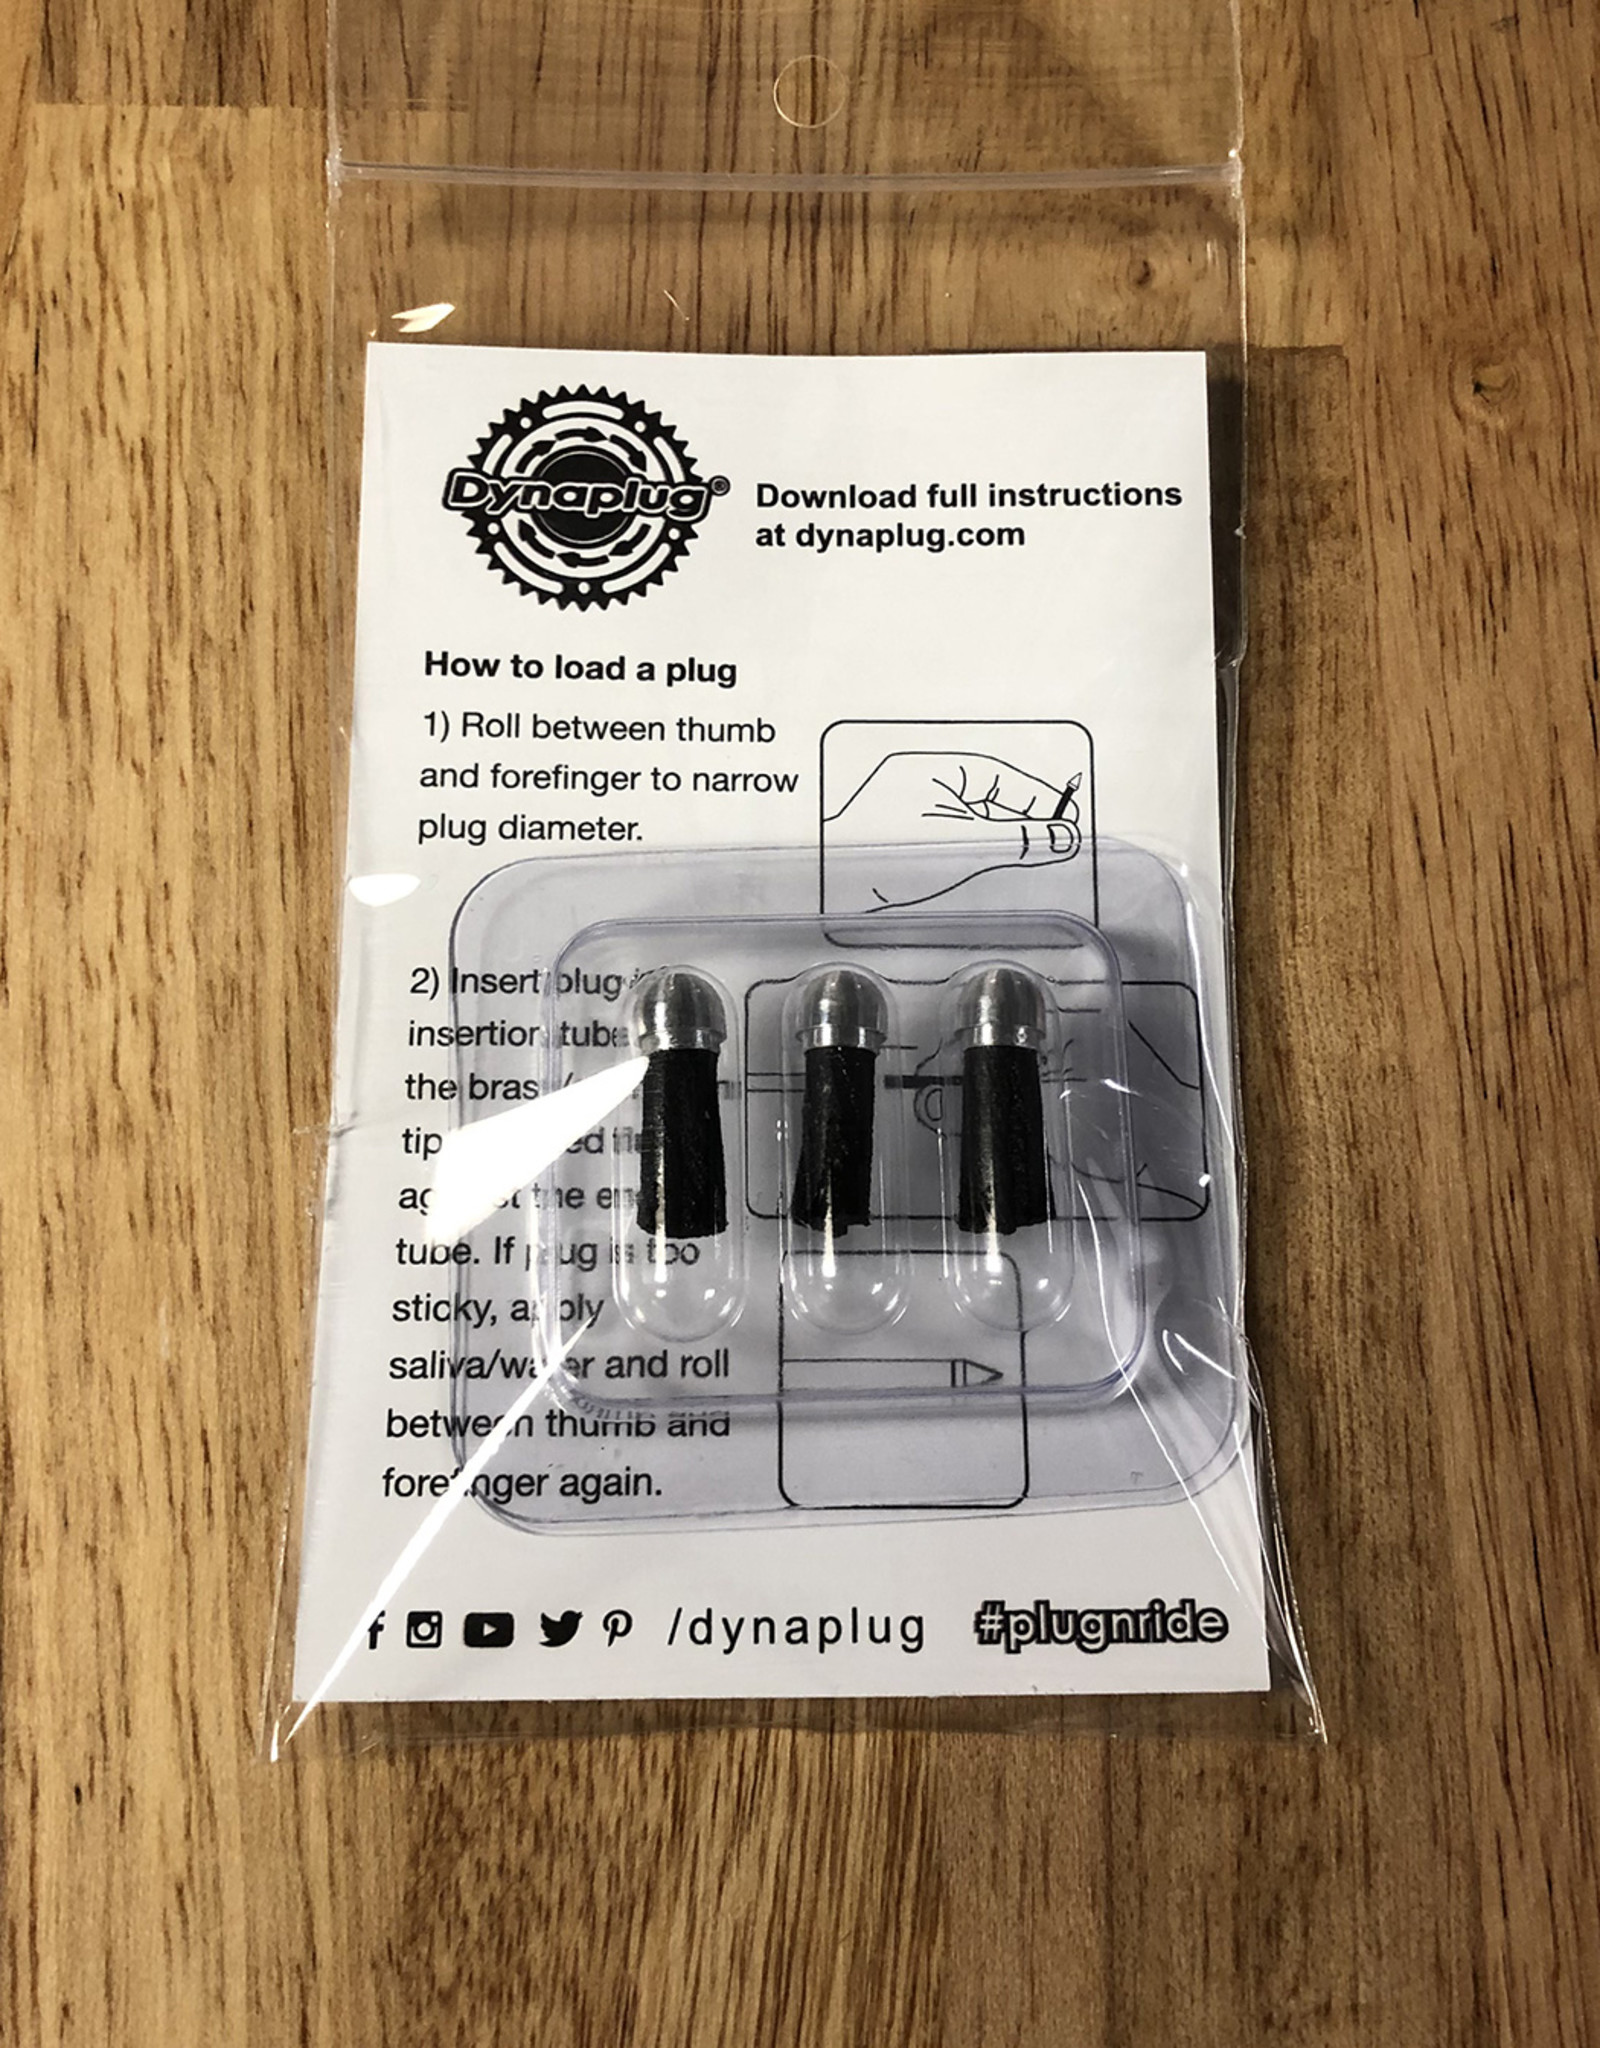 Dynaplug Repair Plugs Mega Tip 3 Pack